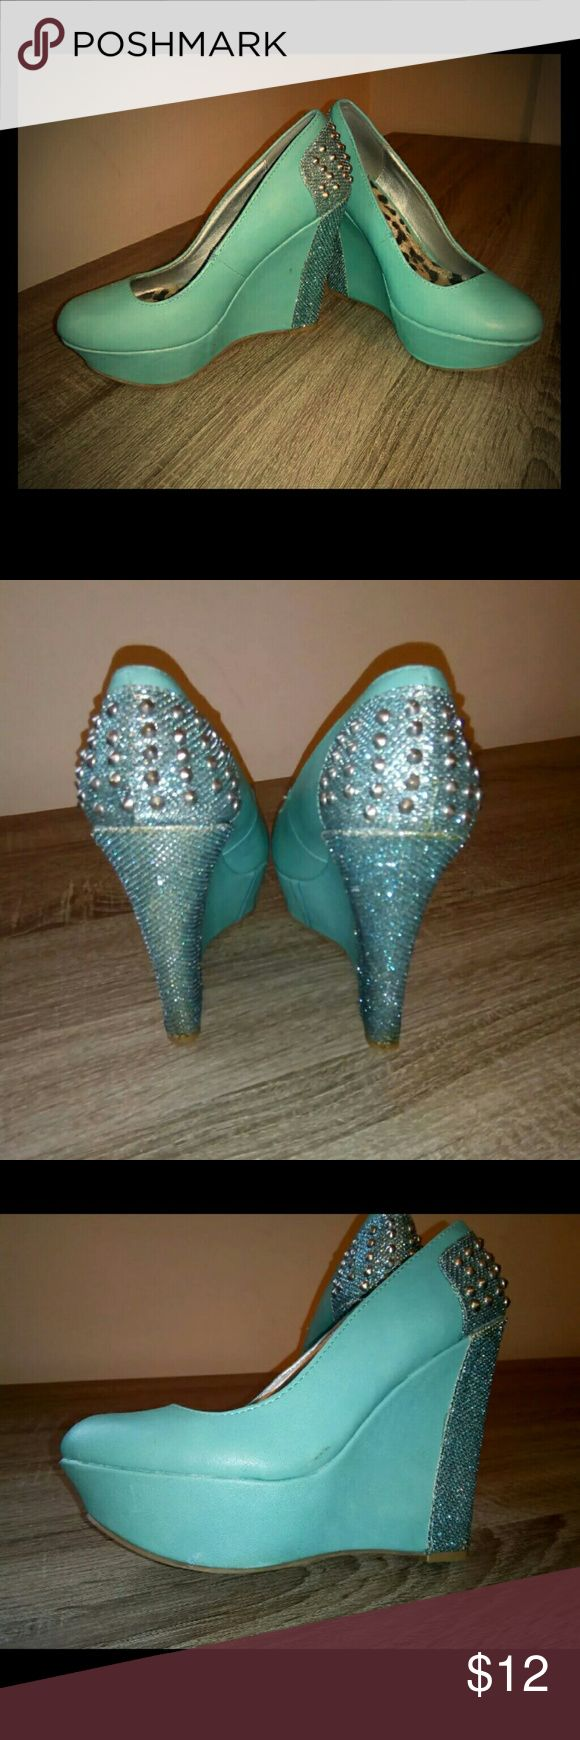 Teal wedges Teal platform wedges with sparkle back accent. Size 7. Few minor scratches from wear.  No reasonable offer refused!  Bundle and save!! Thanks for looking! :-) Shoes Wedges